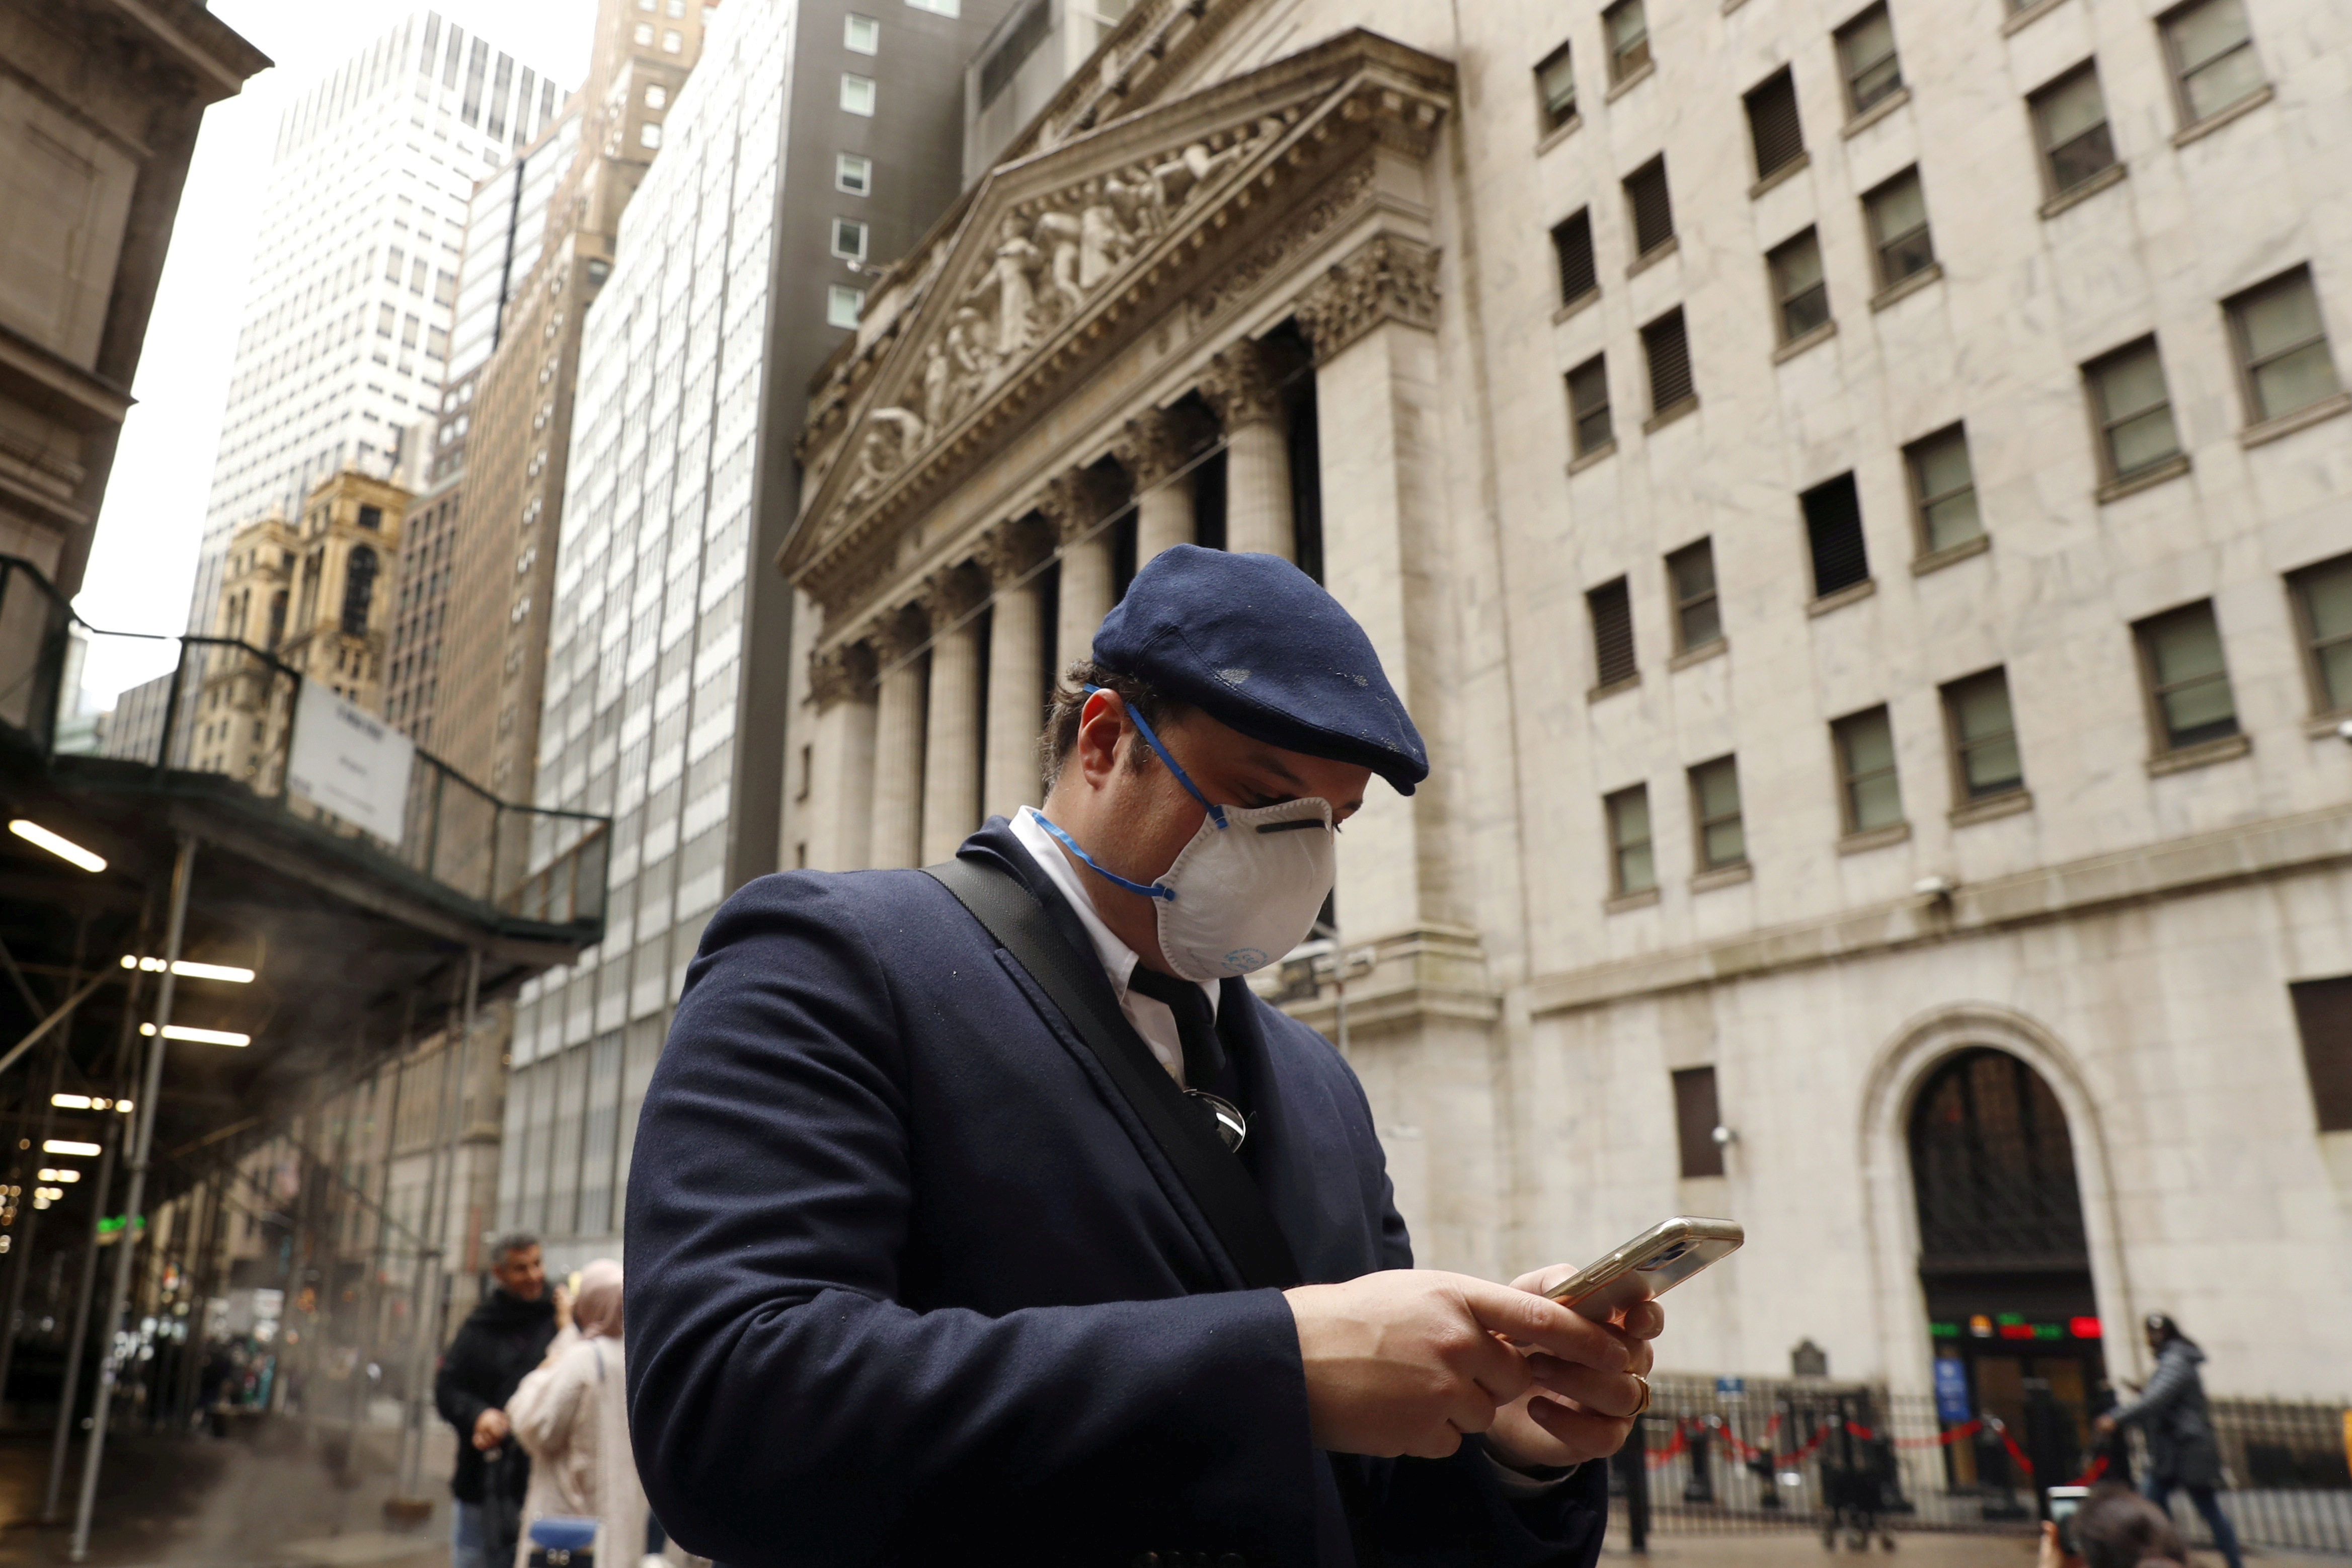 A man walks past the New York Stock Exchange on the corner of Wall and Broad streets in New York City, New York, U.S., March 13, 2020. REUTERS/Lucas Jackson